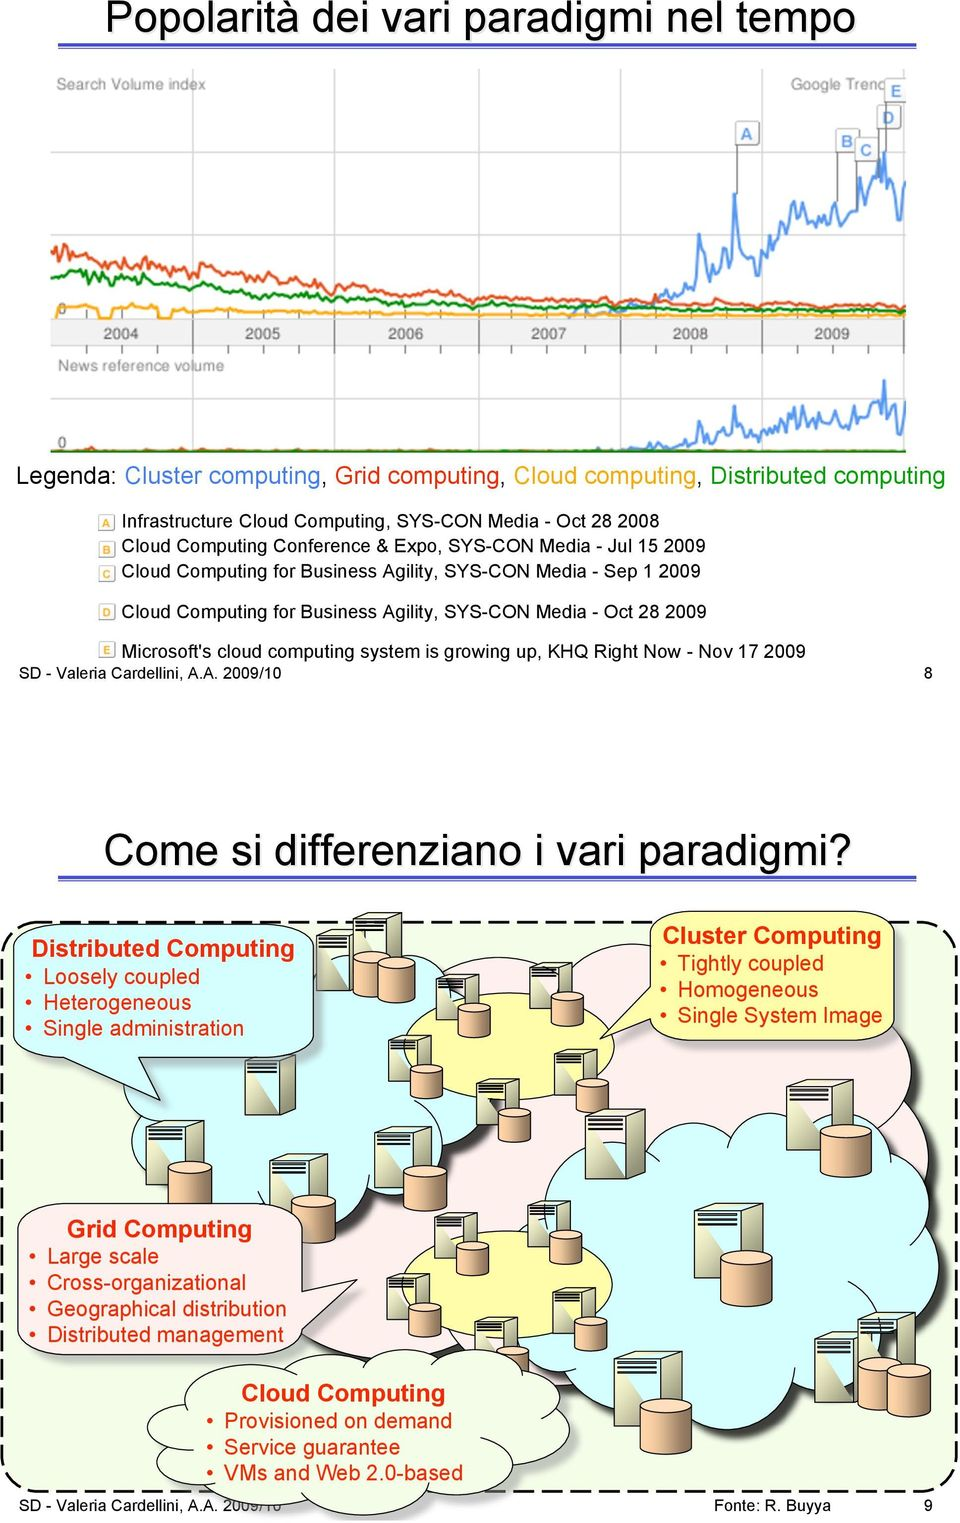 computing system is growing up, KHQ Right Now - Nov 17 2009 SD - Valeria Cardellini, A.A. 2009/10 8 Come si differenziano i vari paradigmi?